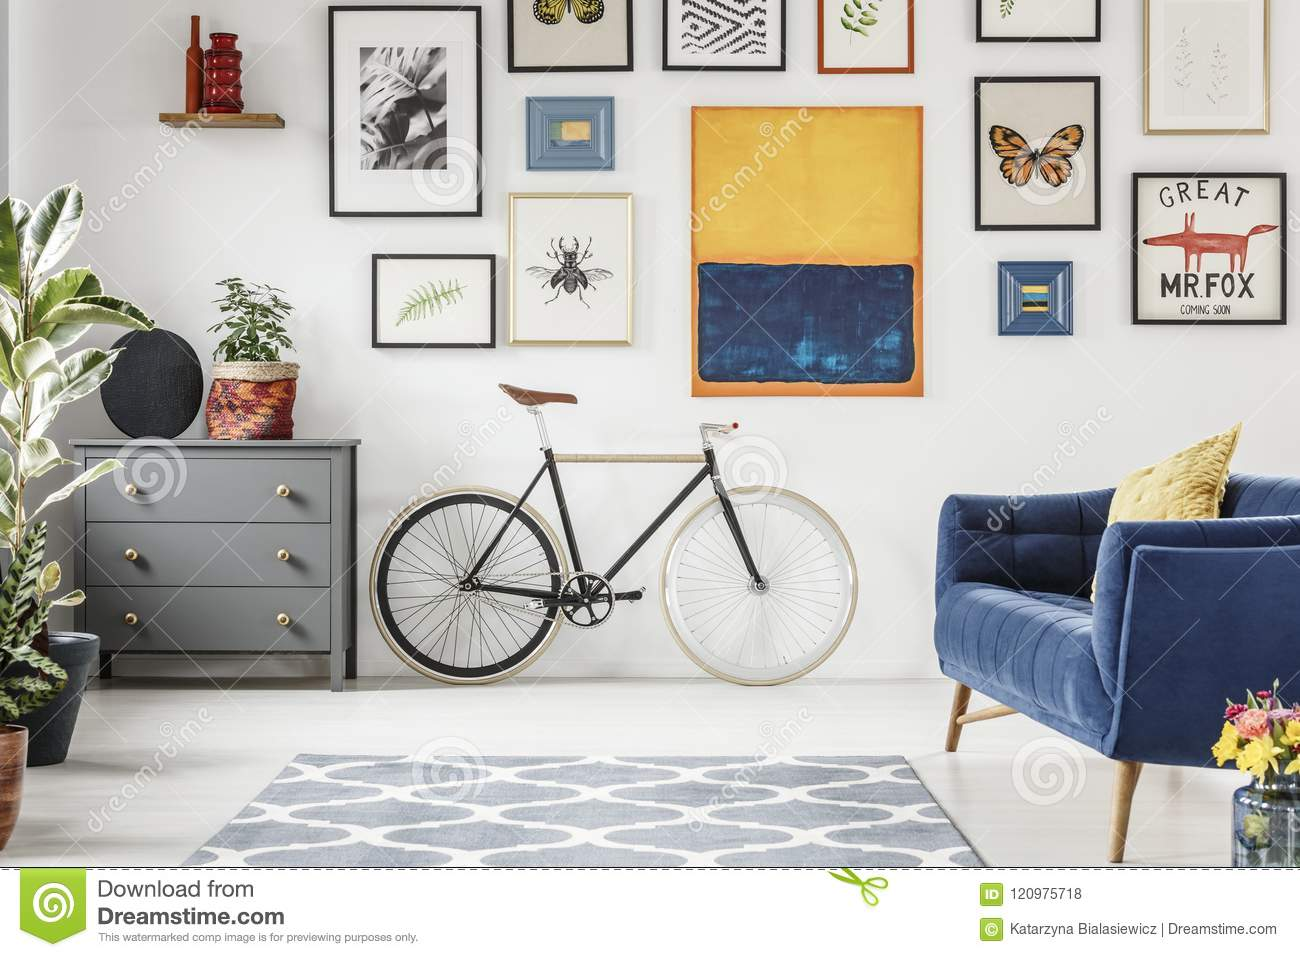 Super Grey Cabinet Next To Bicycle In Flat Interior With Blue Sofa Squirreltailoven Fun Painted Chair Ideas Images Squirreltailovenorg